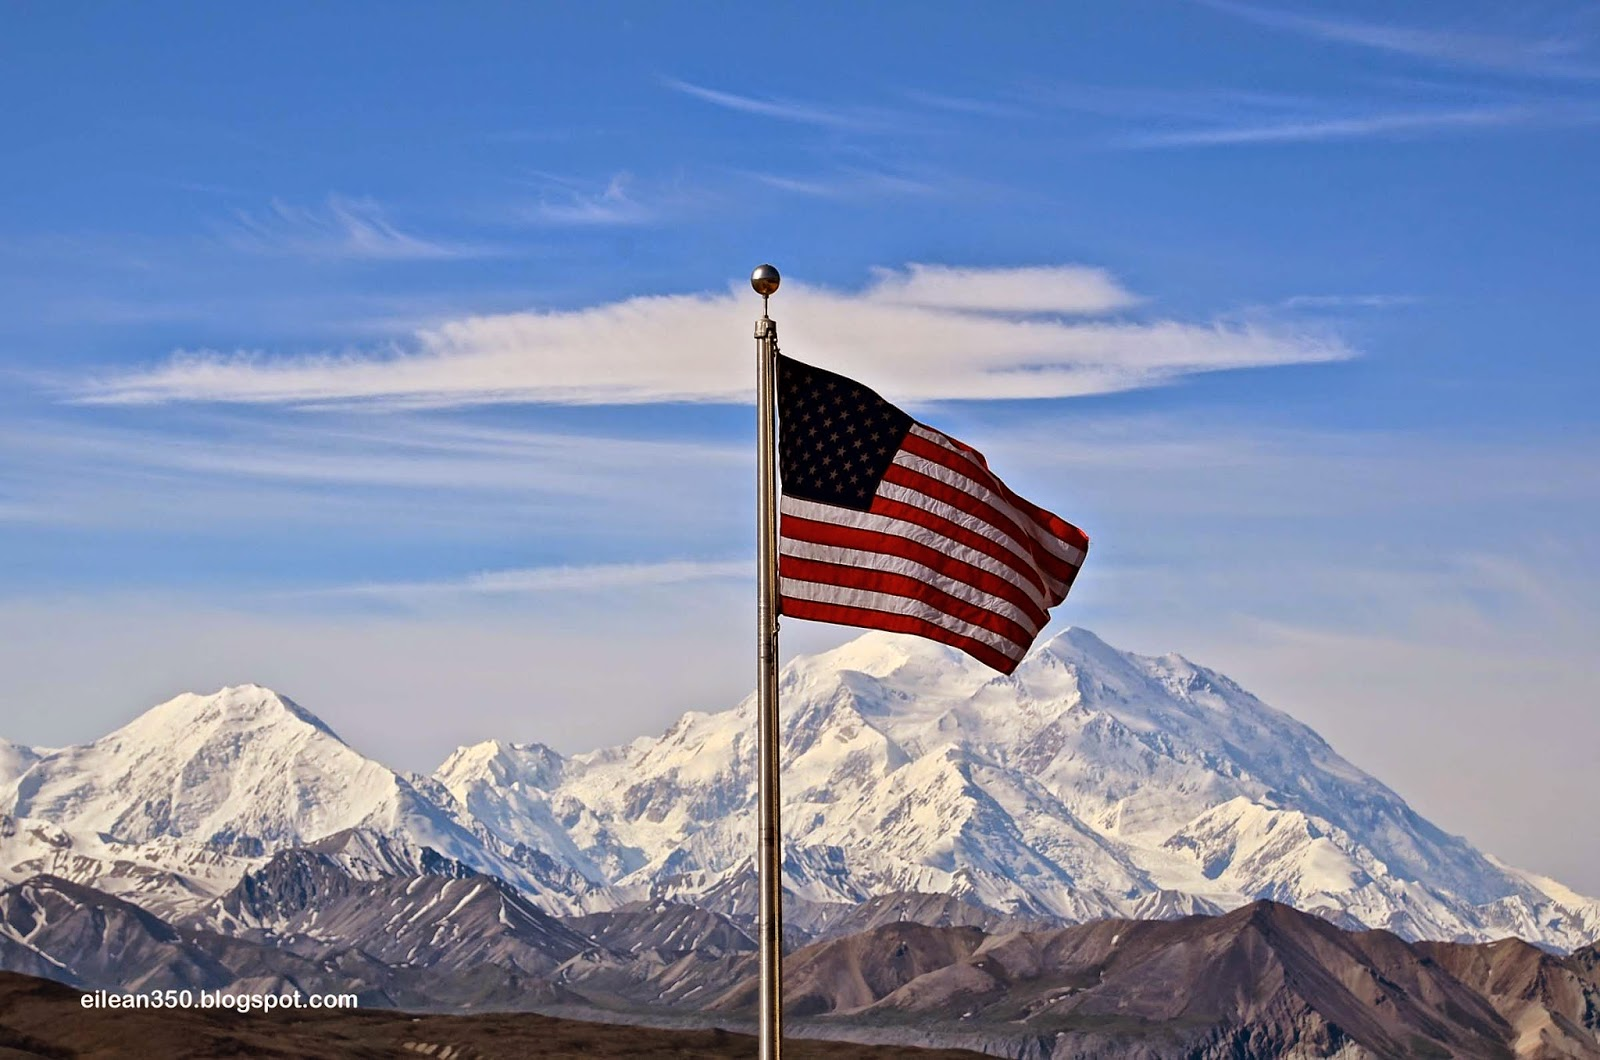 denali on 4th of july 2014